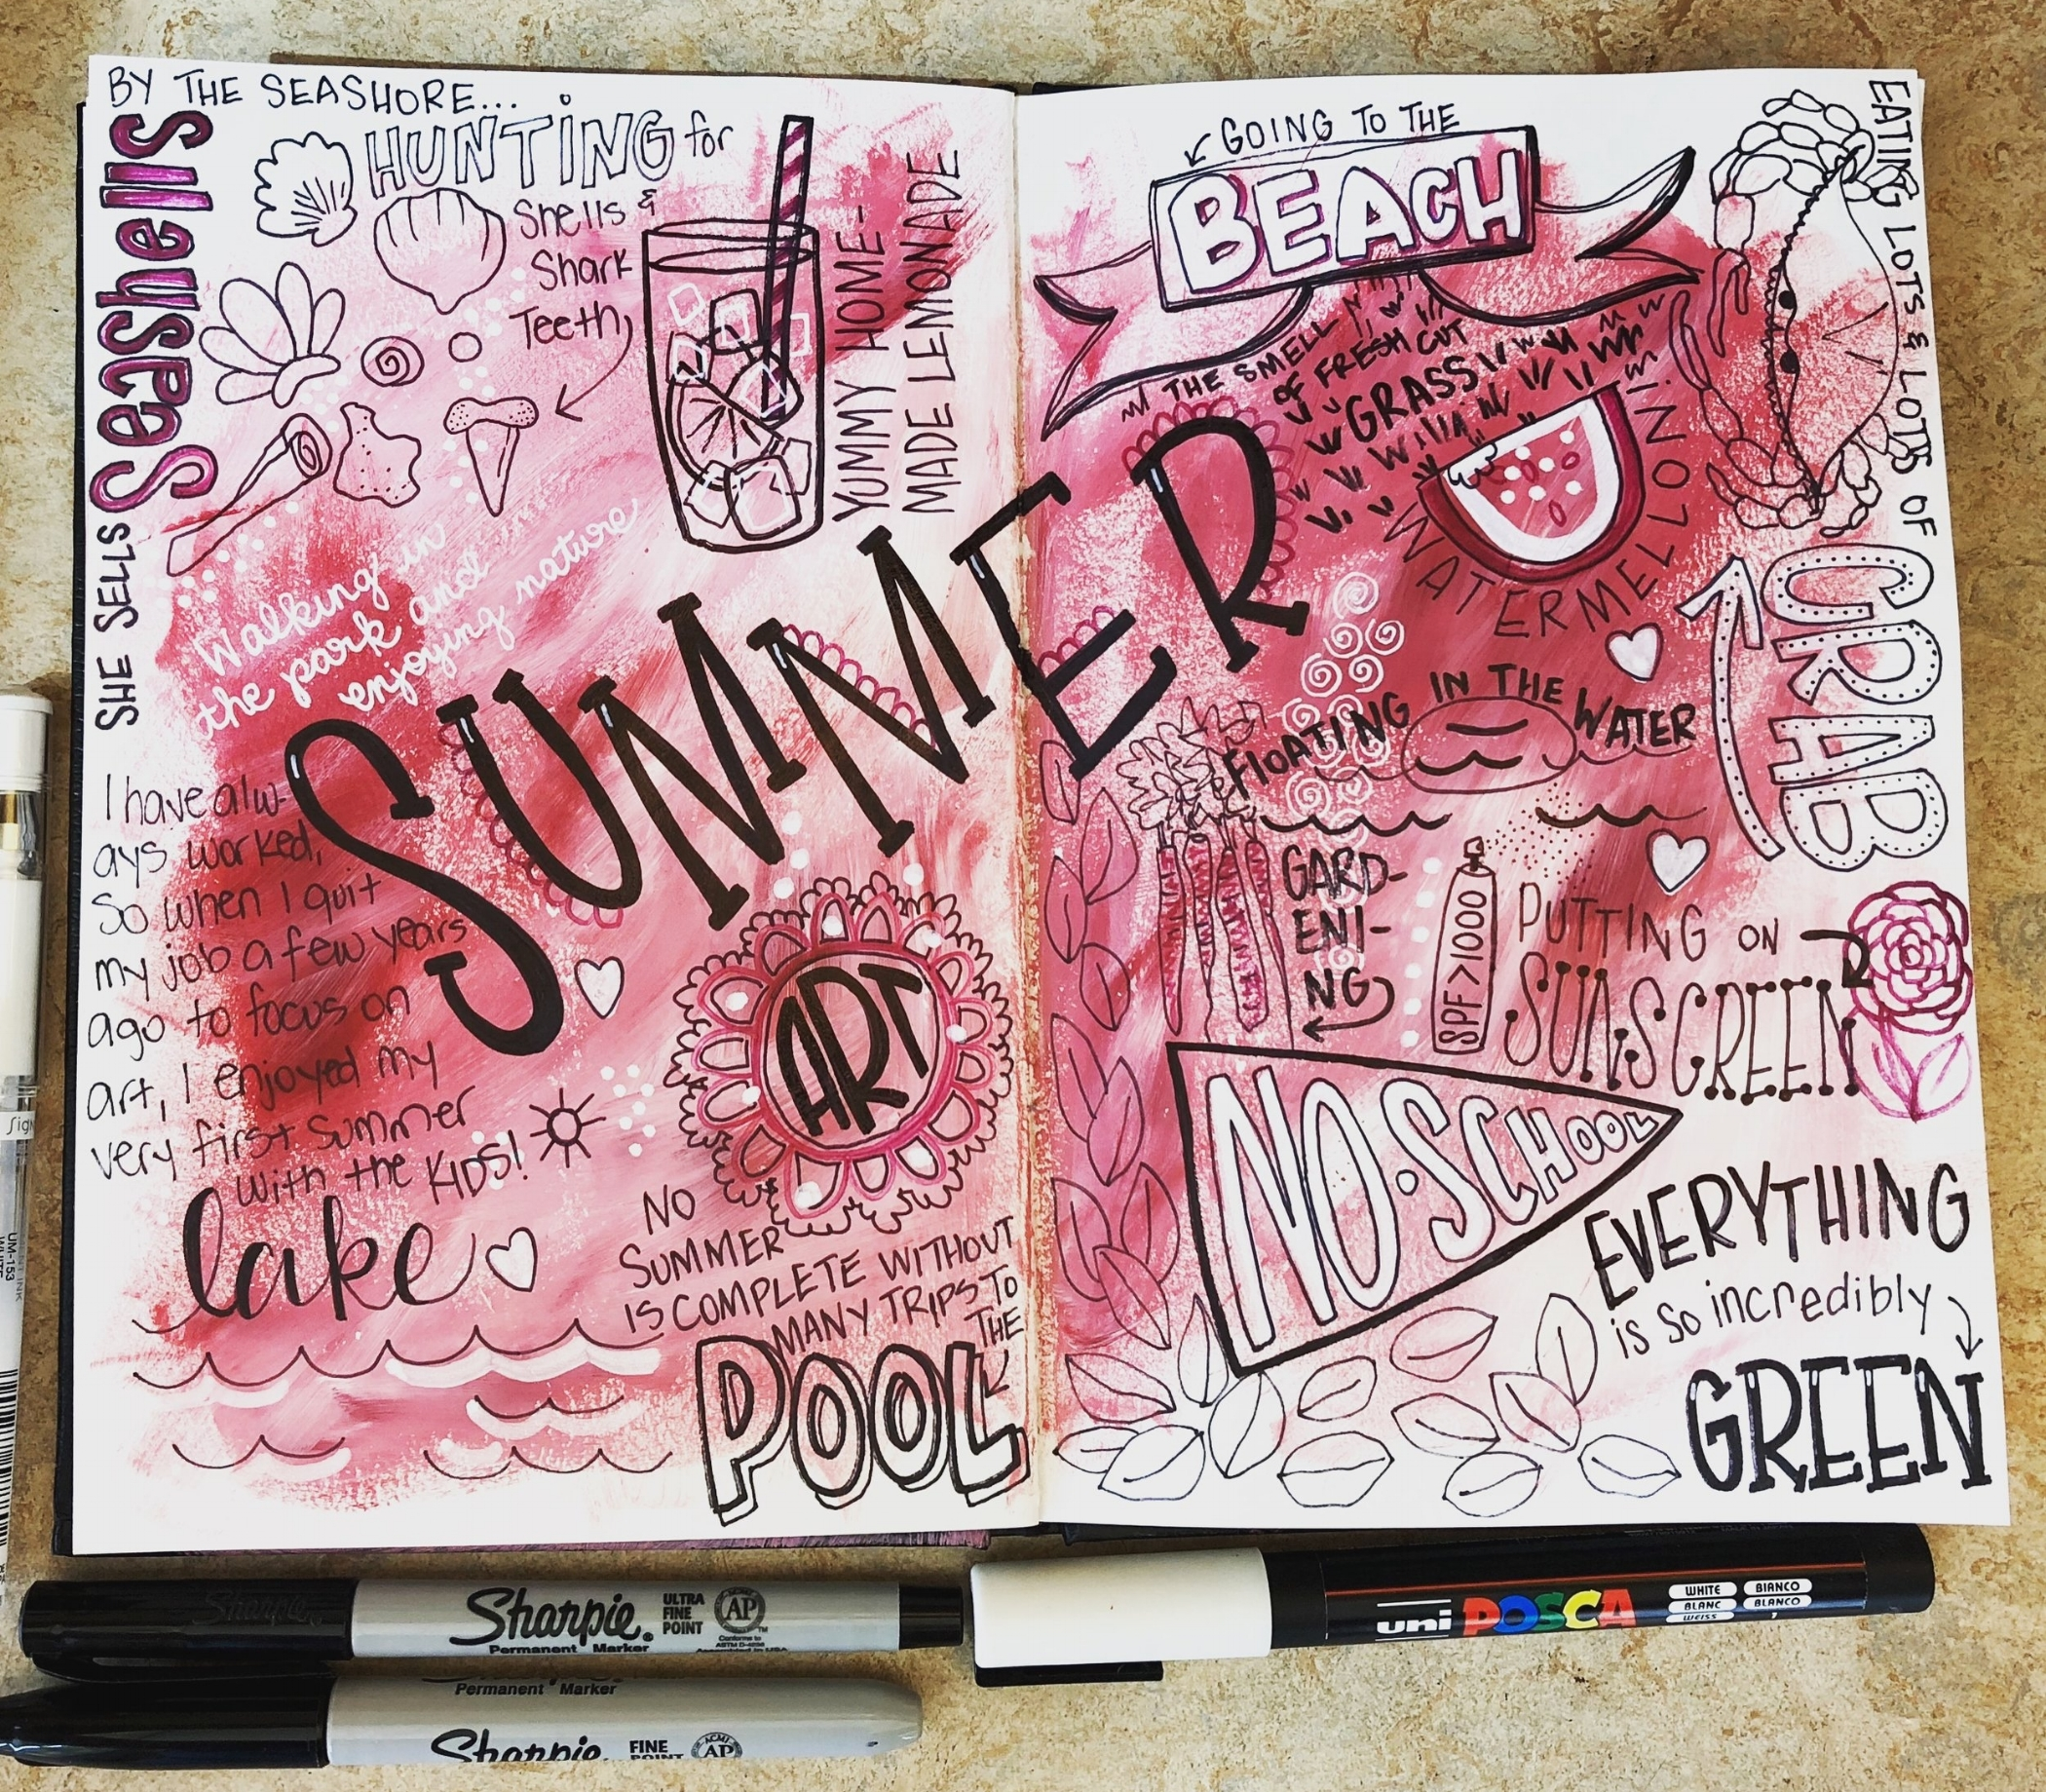 This is just a fun little spread I've been working on in my art journal...